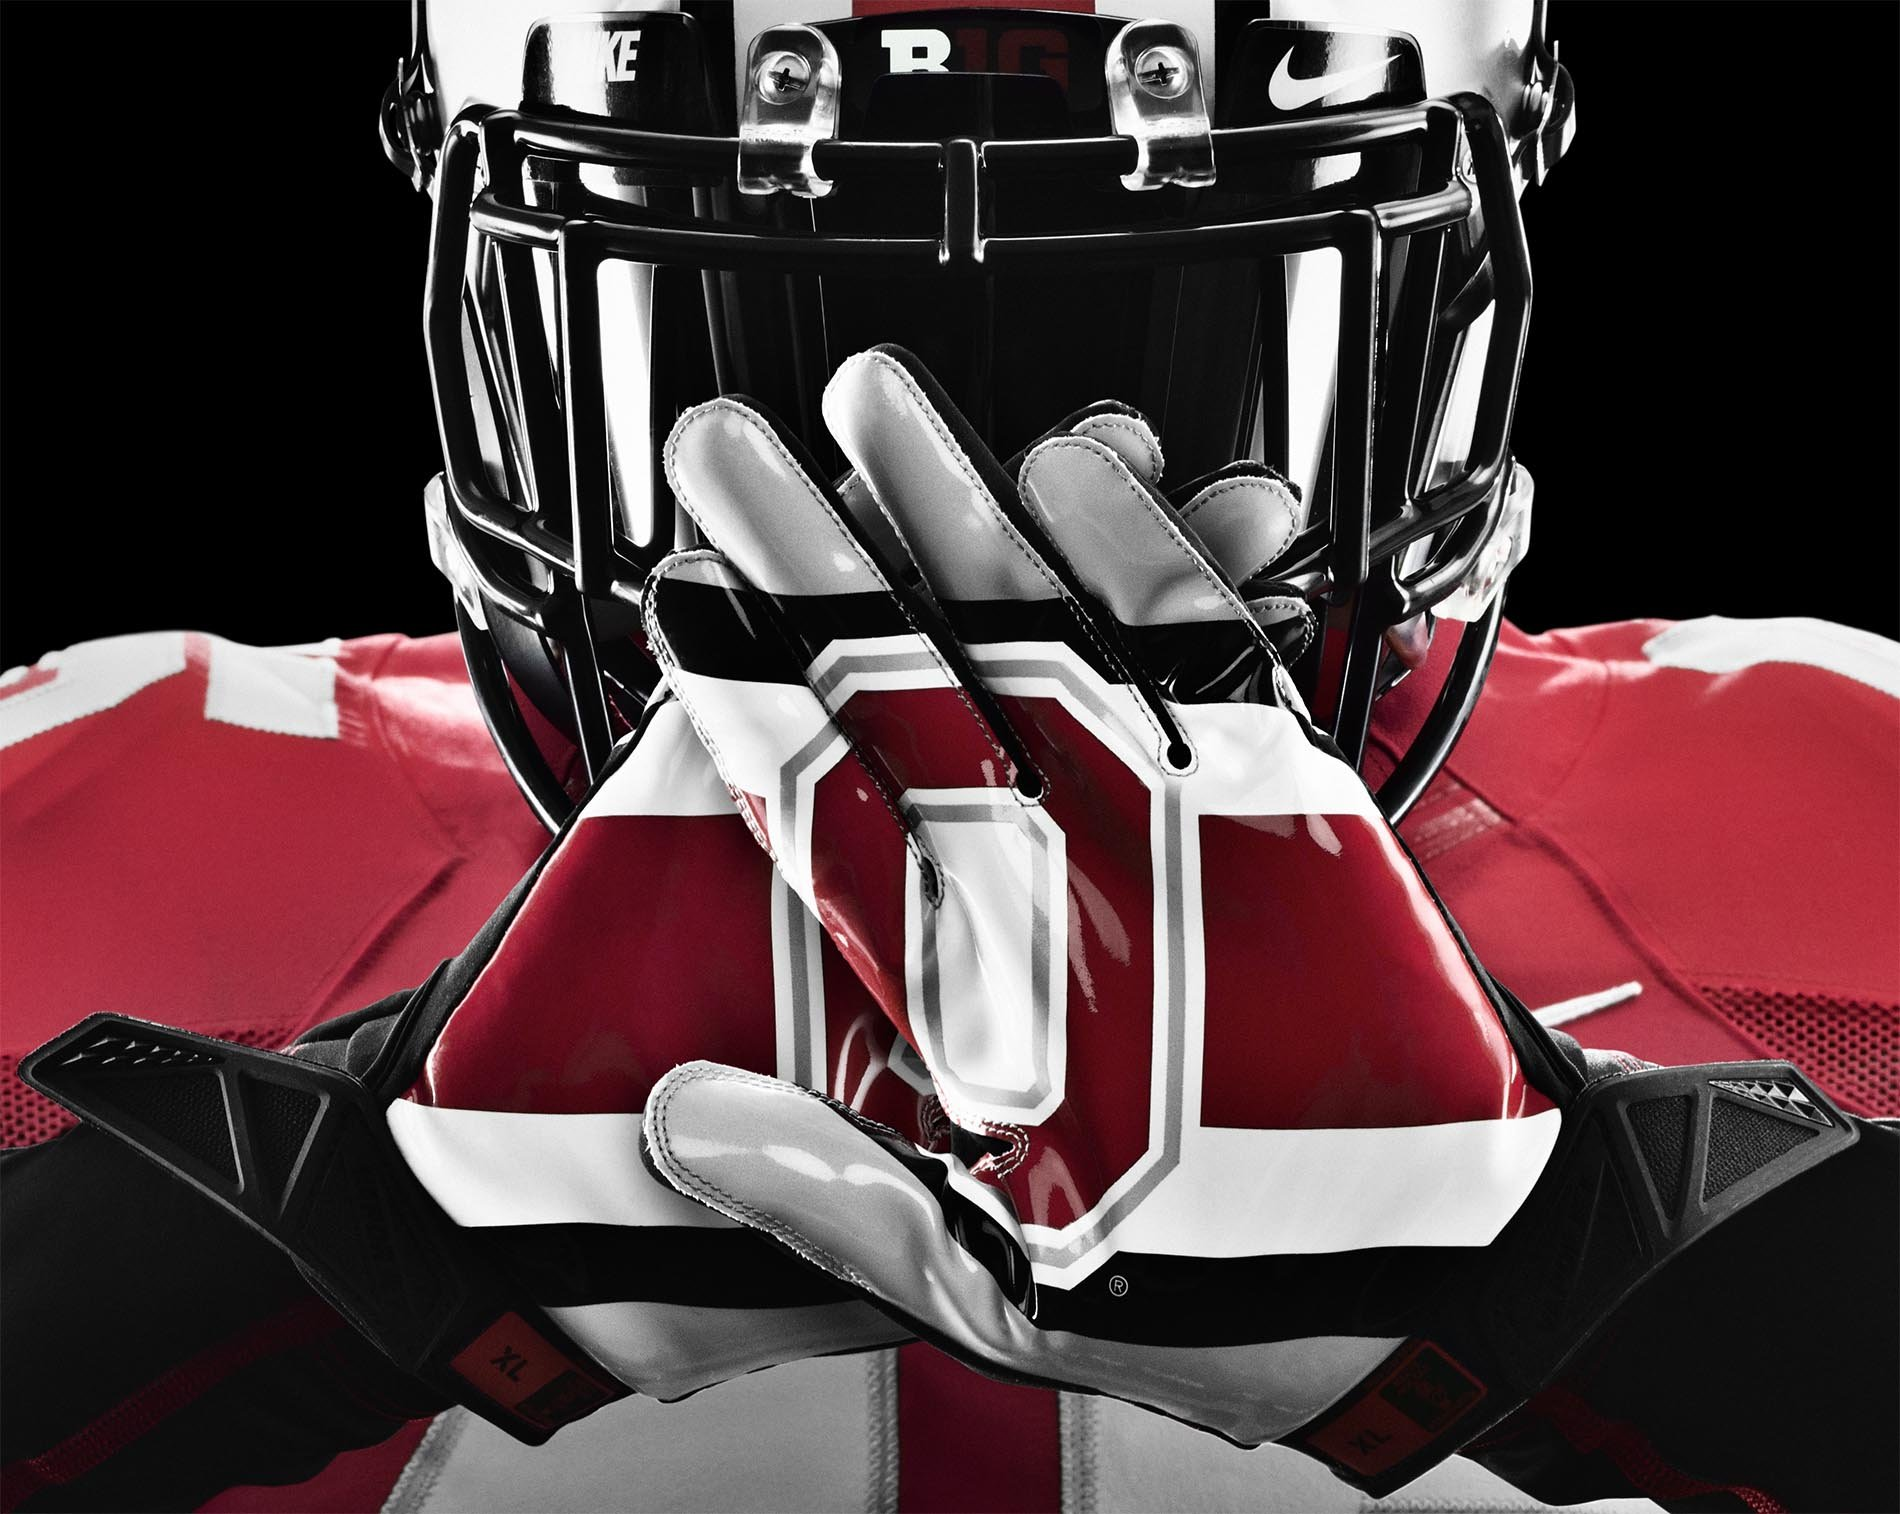 OHIO STATE BUCKEYES college football poster wallpaper 1900x1514 1900x1514